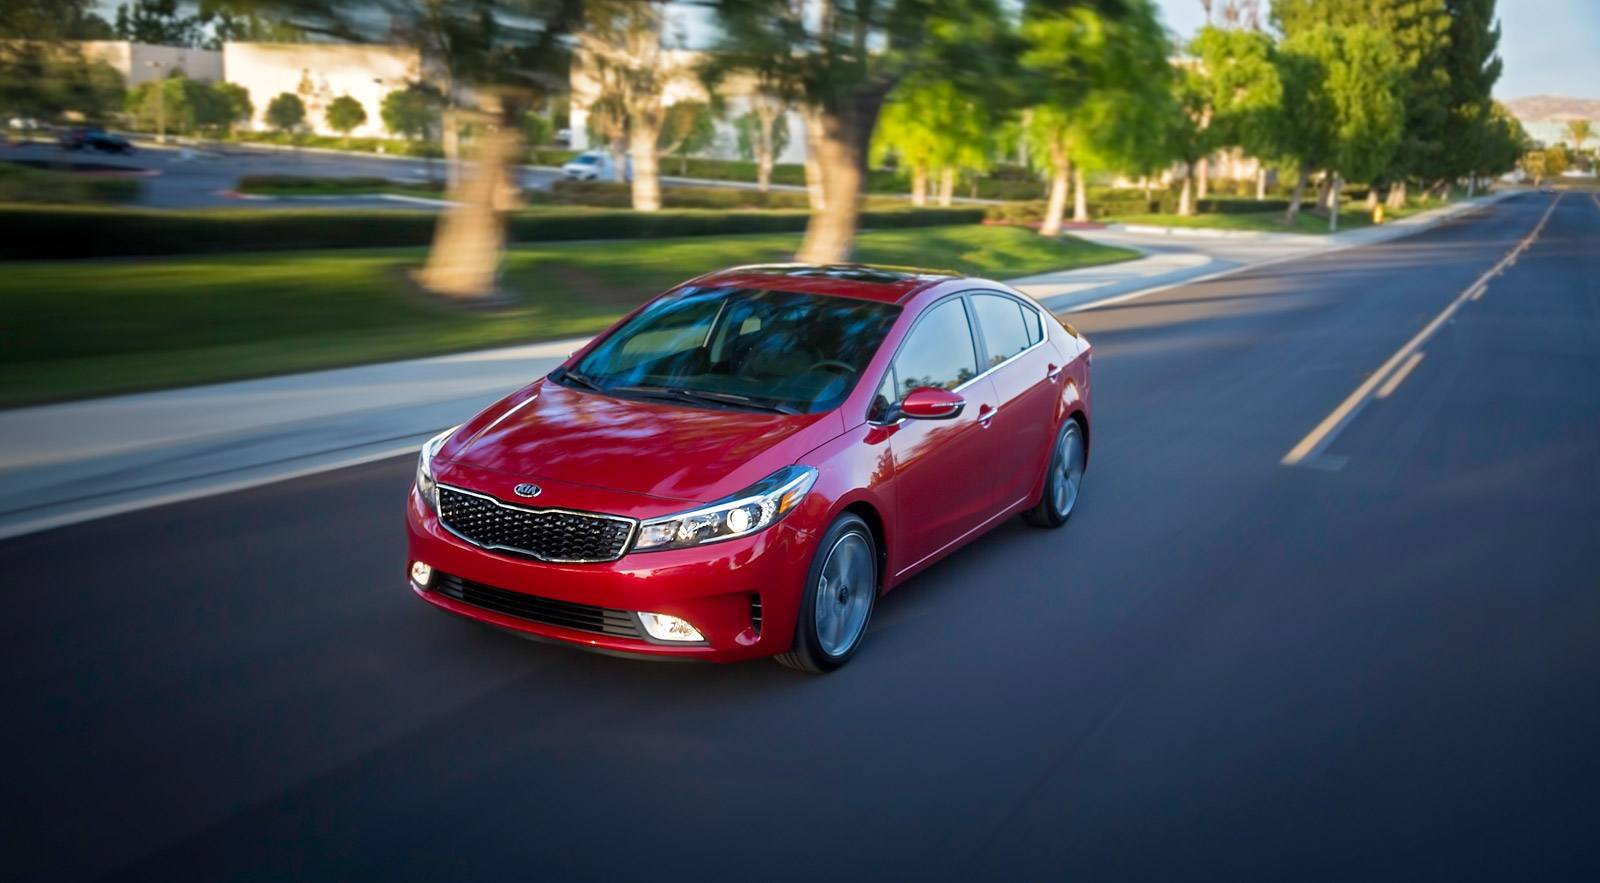 This Year Kia Had Numerous Highest Ranked Vehicles With The Forte Taking Crown For Compact Car Segment Tying Second Place Are